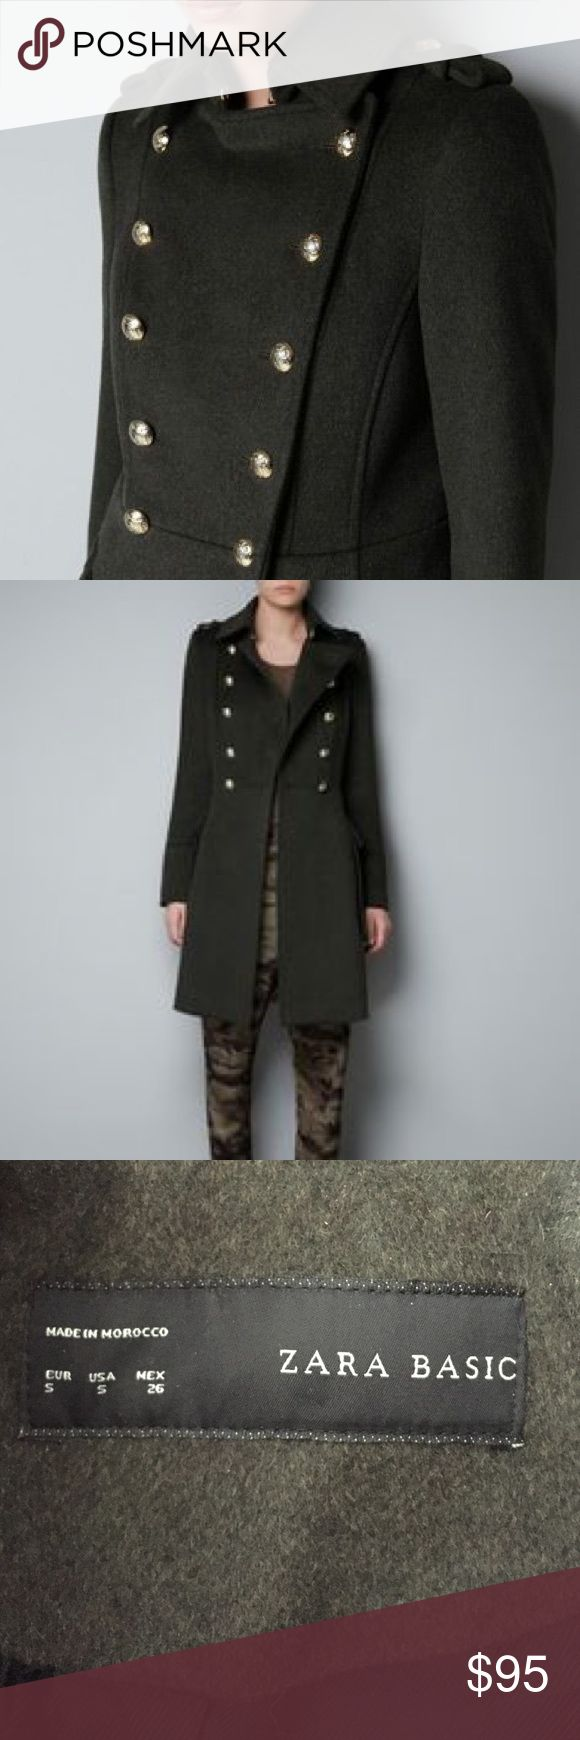 """HP Zara Wool Blend Military Pea Coat Like new, gorgeous chic and classic army green military style pea coat with gold buttons.  Length is 36"""".  50% wool.  Features detail on shoulders, large side pockets and buttons on sleeves.  In excellent condition. Zara Jackets & Coats Pea Coats"""